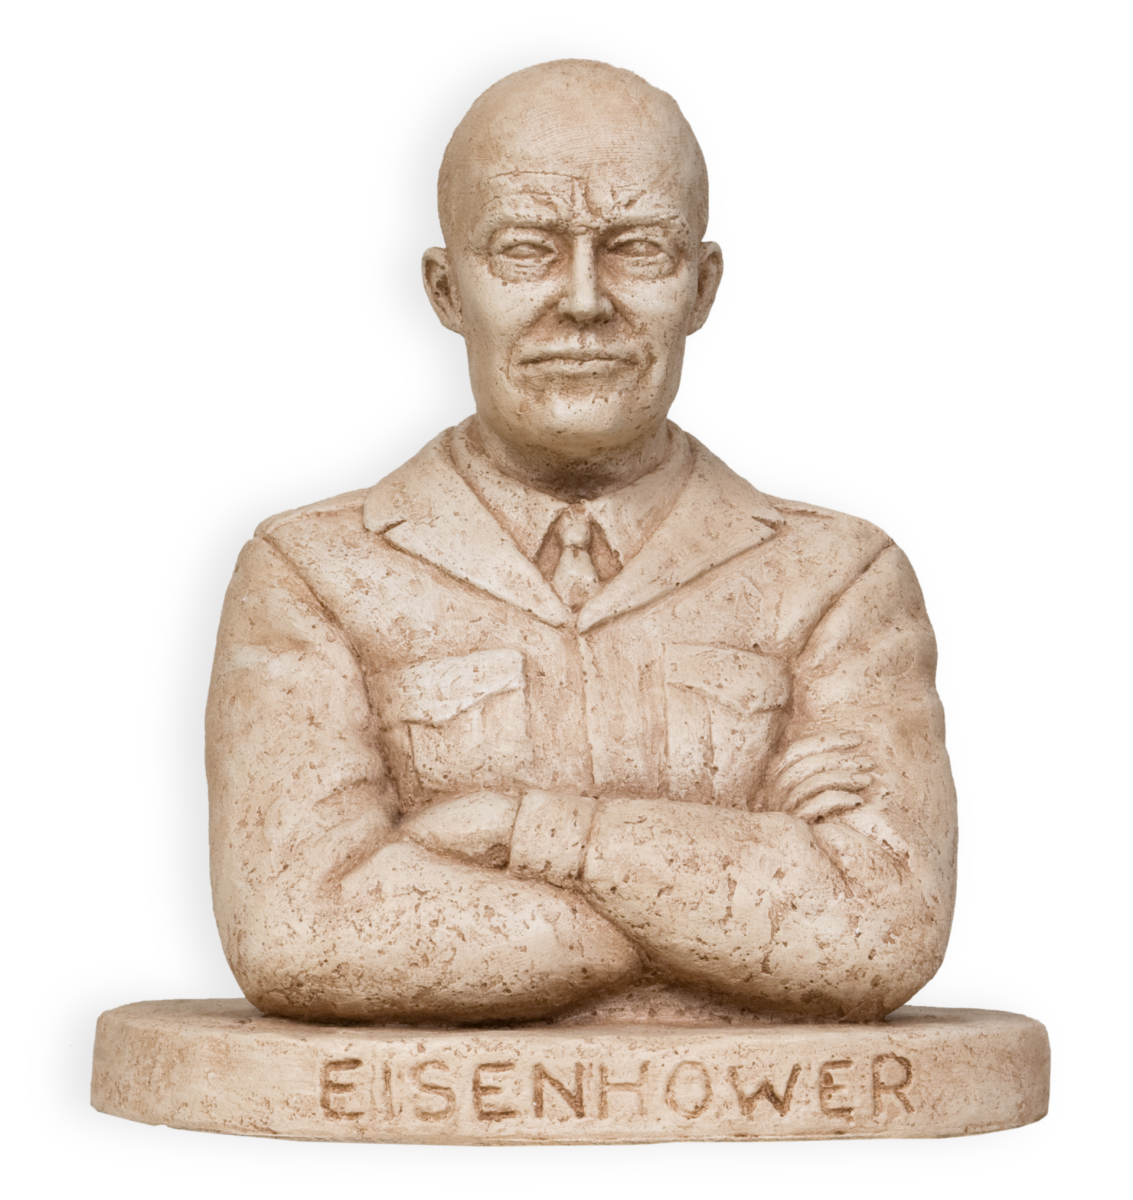 Peter Felten's model of Dwight Eisenhower, made for the Capitol sculpture competition.